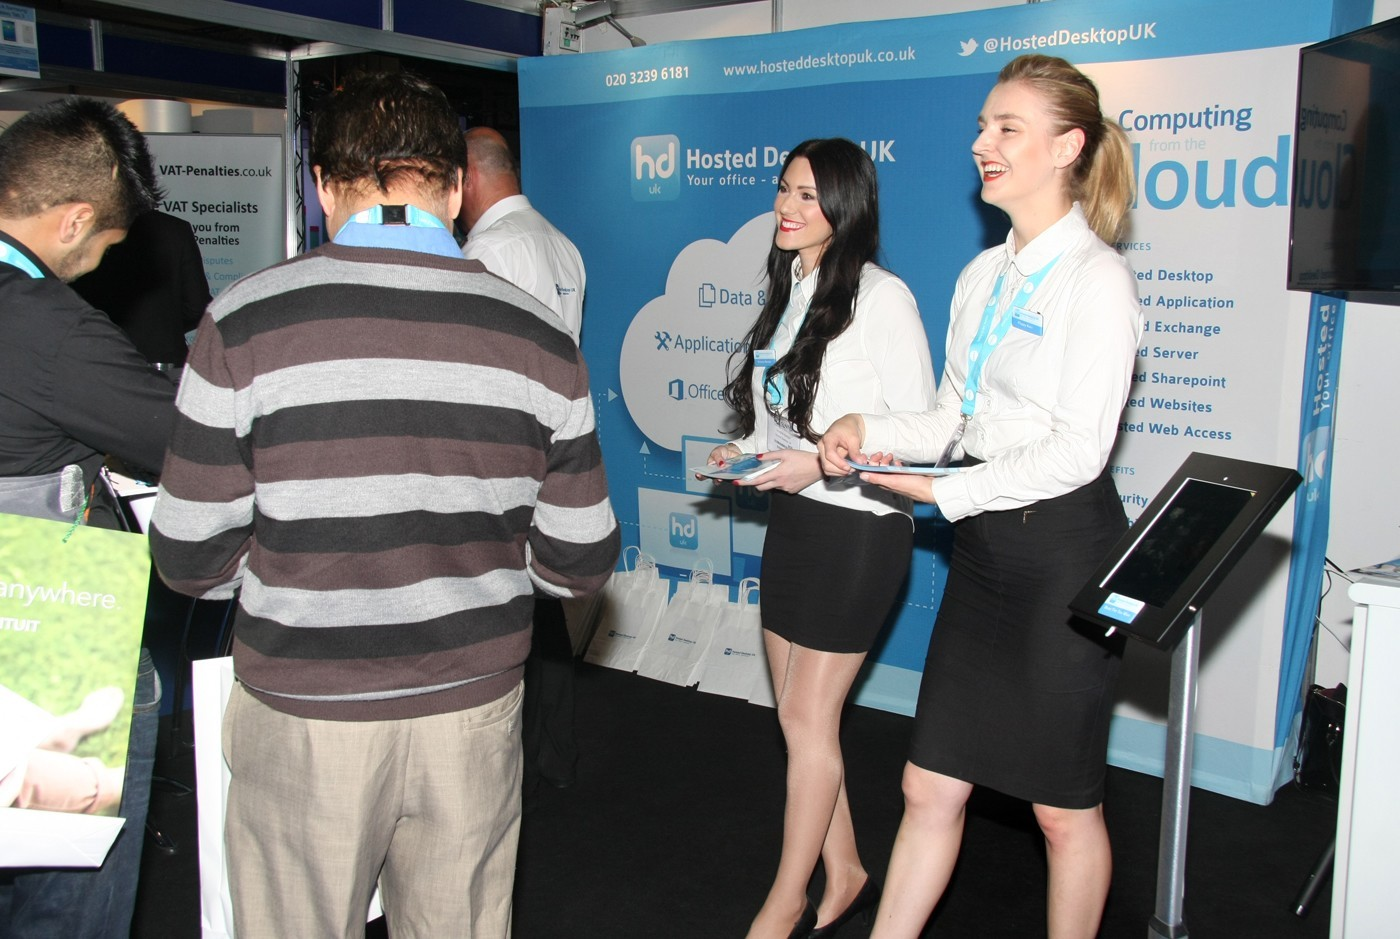 Exhibition Stand Hostess : Exhibition stand hostesses available in rust germany